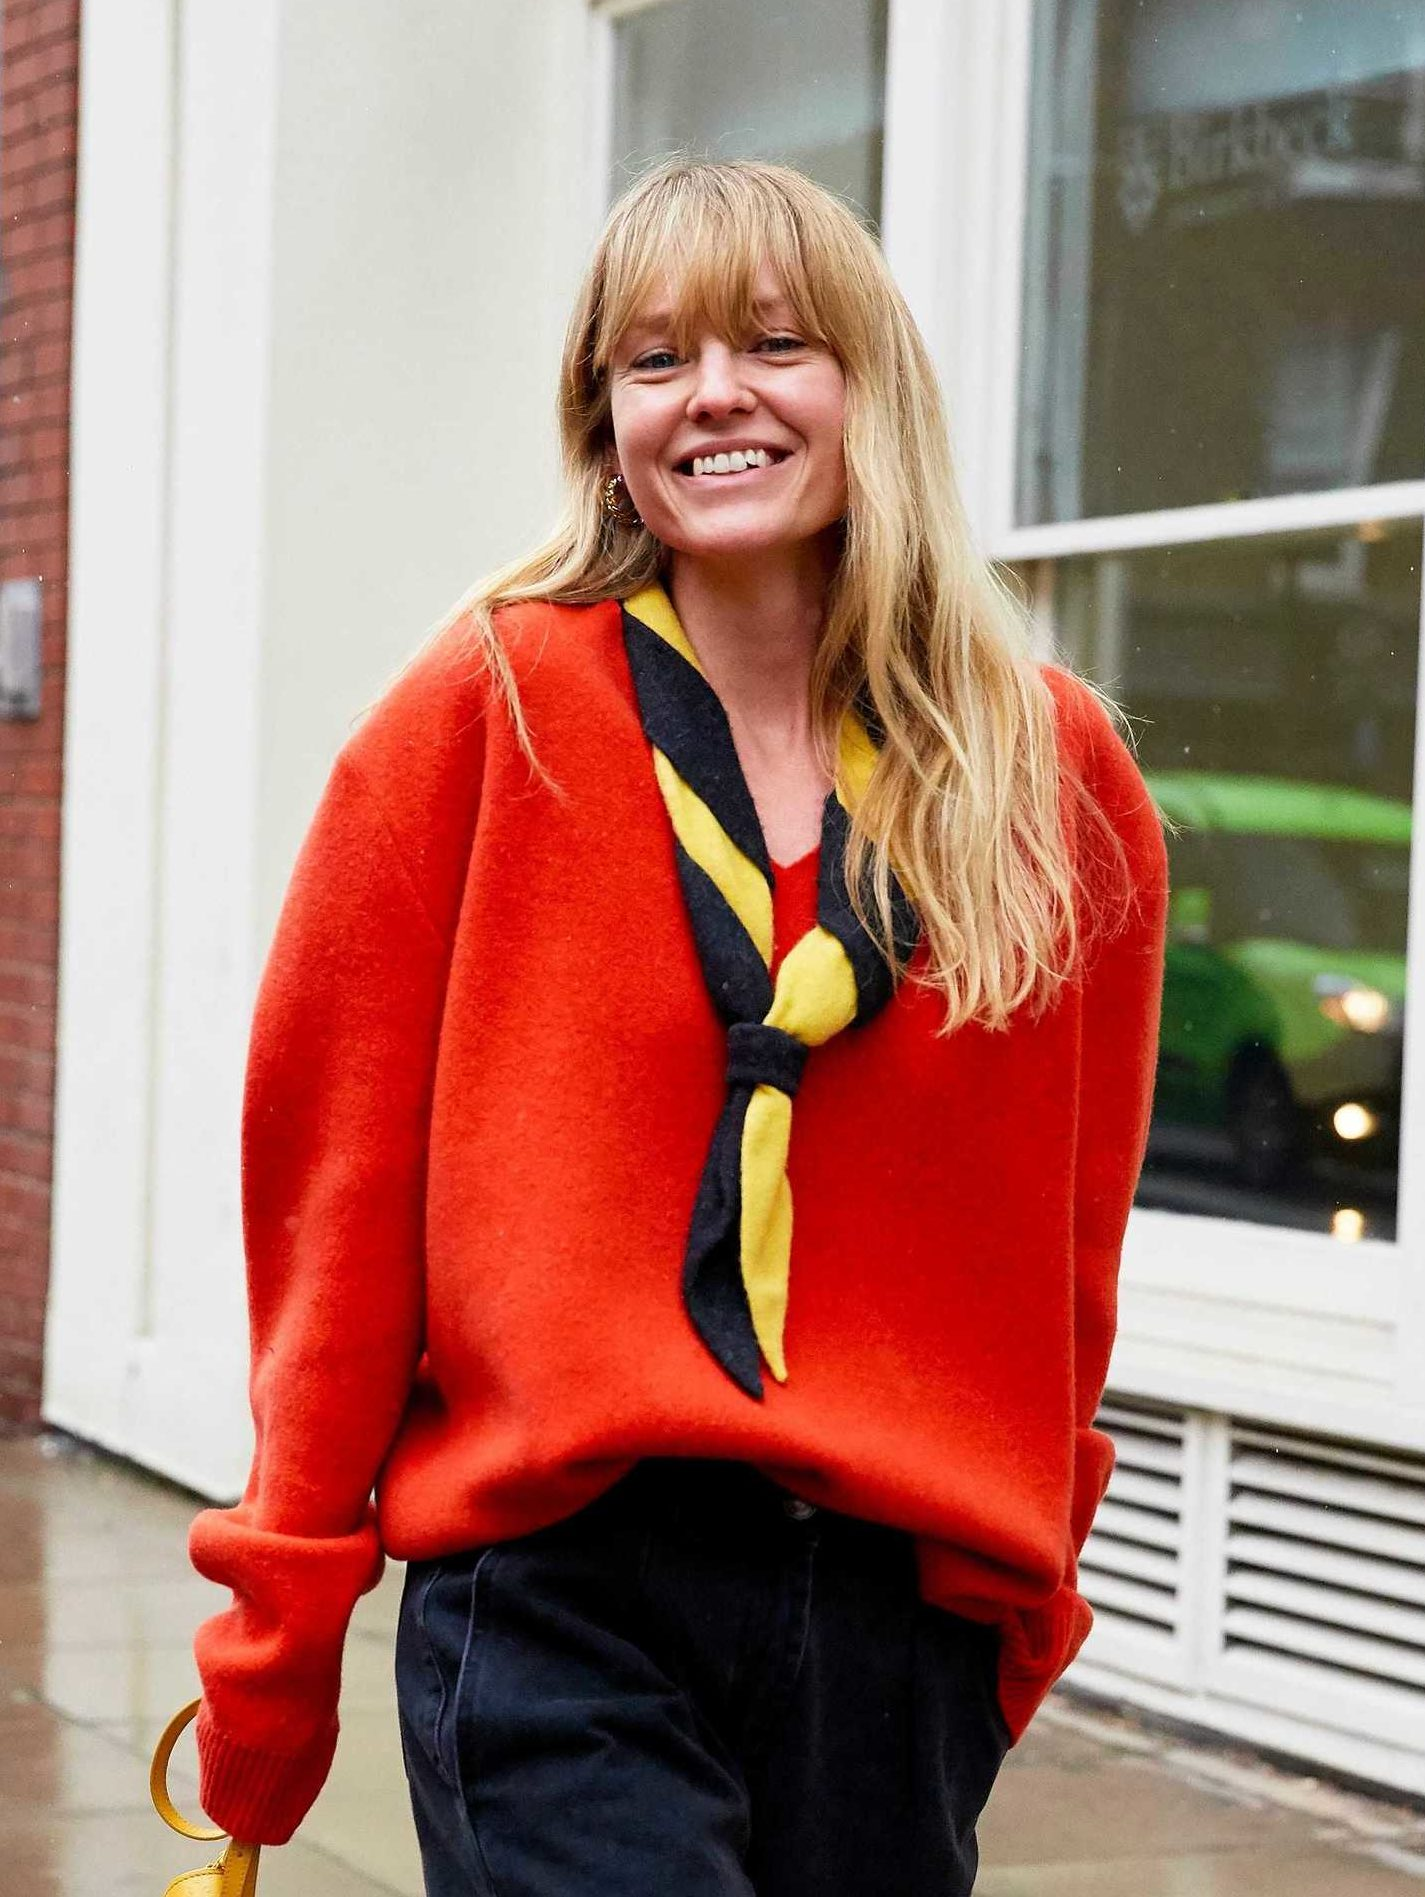 Spring haircuts: Blonde street styler with mid length wavy hair and a full fringe, wearing an orange red jumper and a striped neck scarf, standing outside in the street